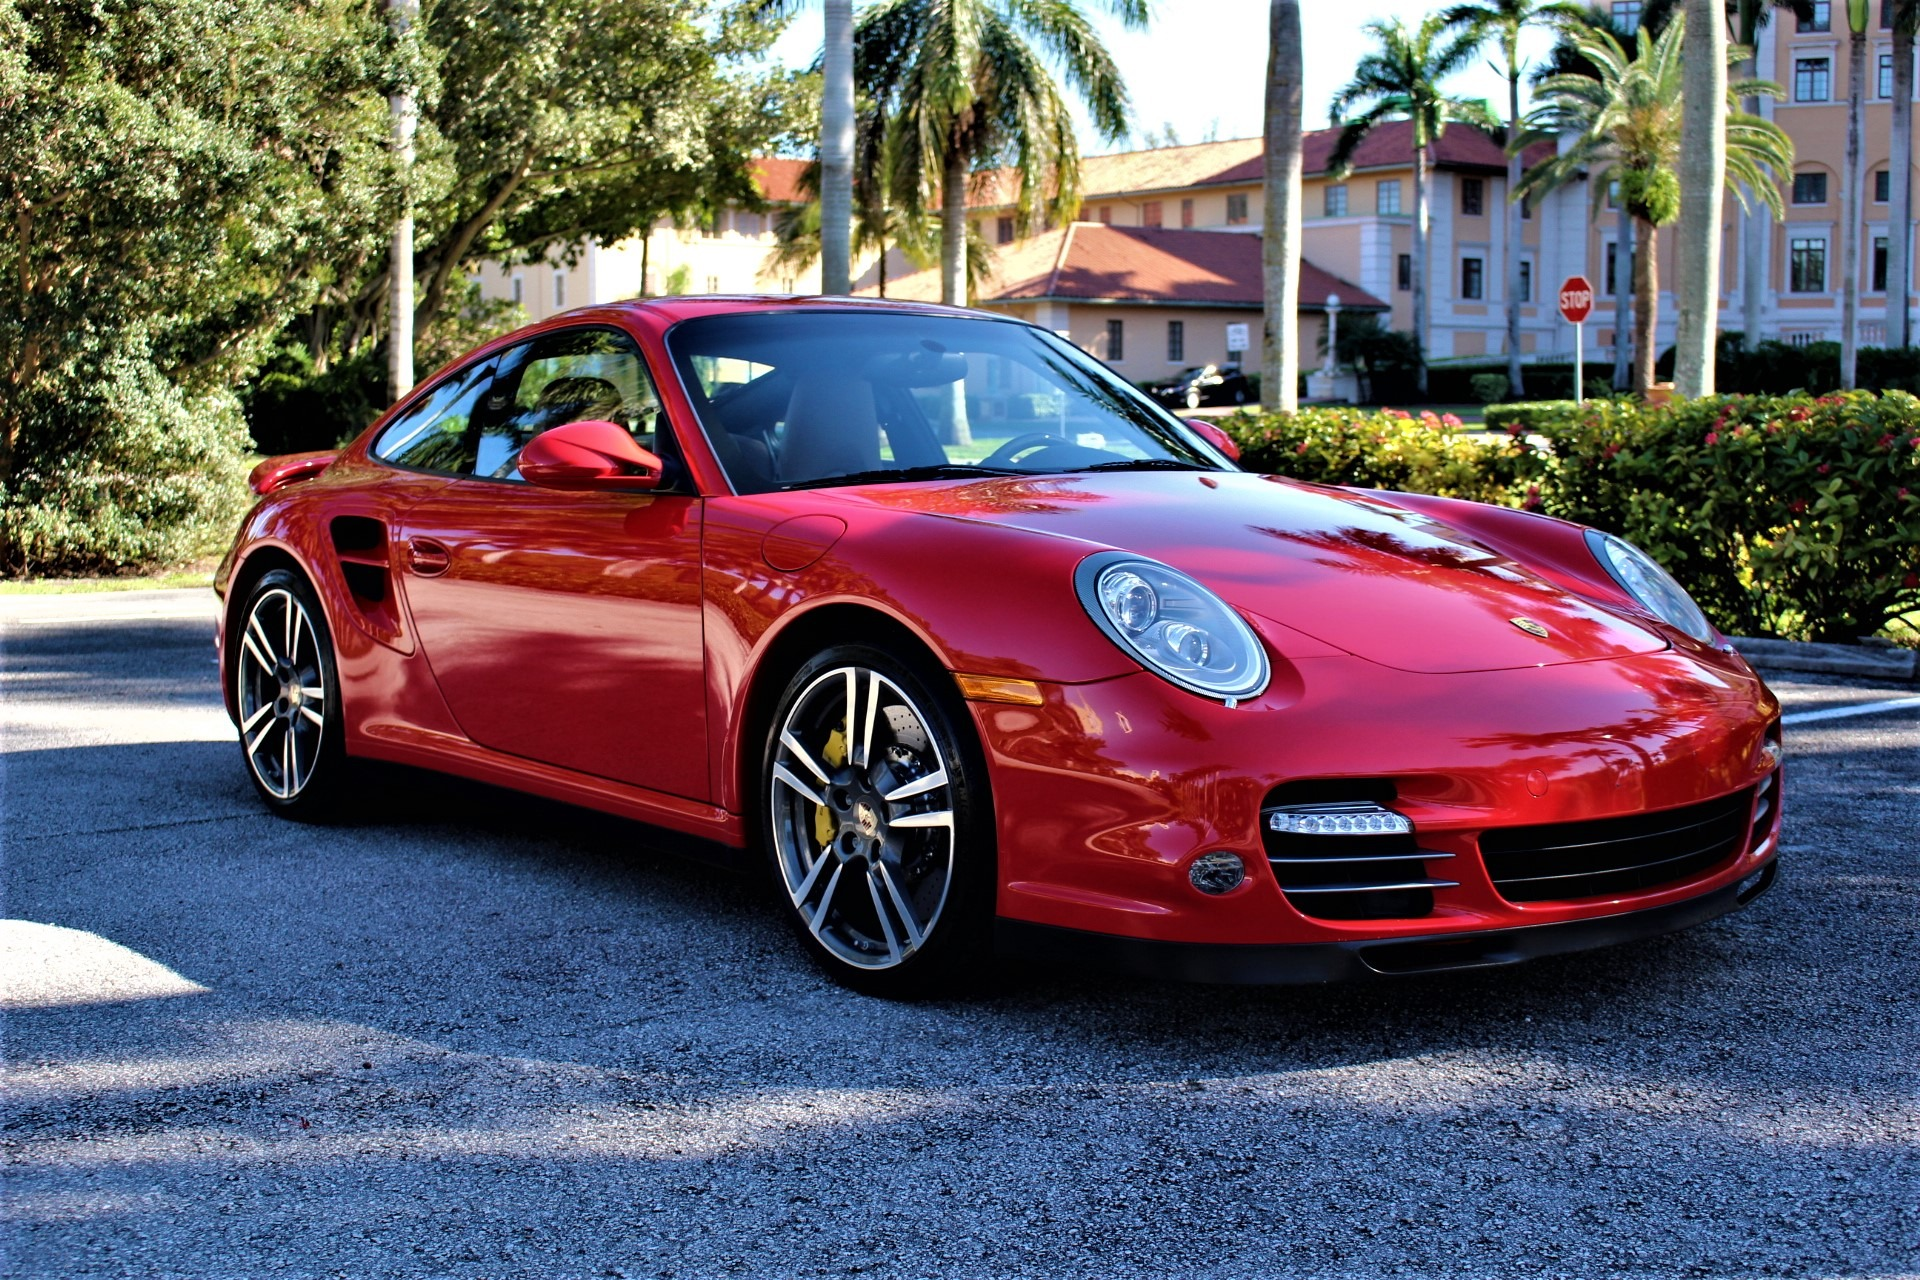 Used 2012 Porsche 911 Turbo for sale Sold at The Gables Sports Cars in Miami FL 33146 4